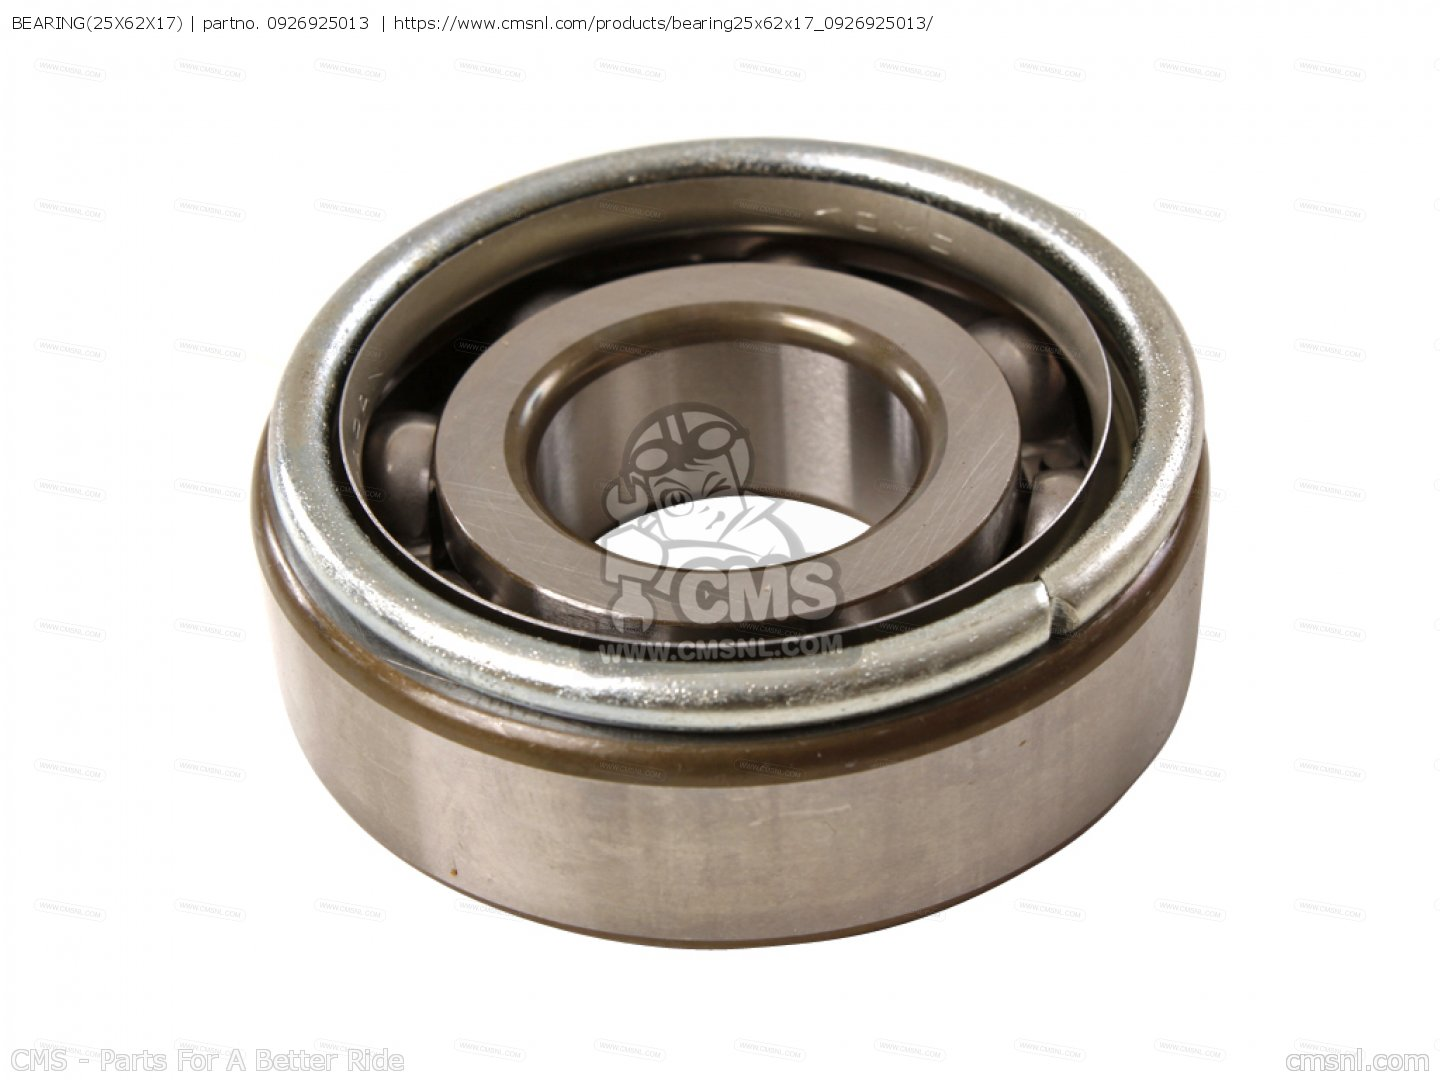 SUZUKI BEARING (25X62X17) WITH LOCATING RING JAPAN